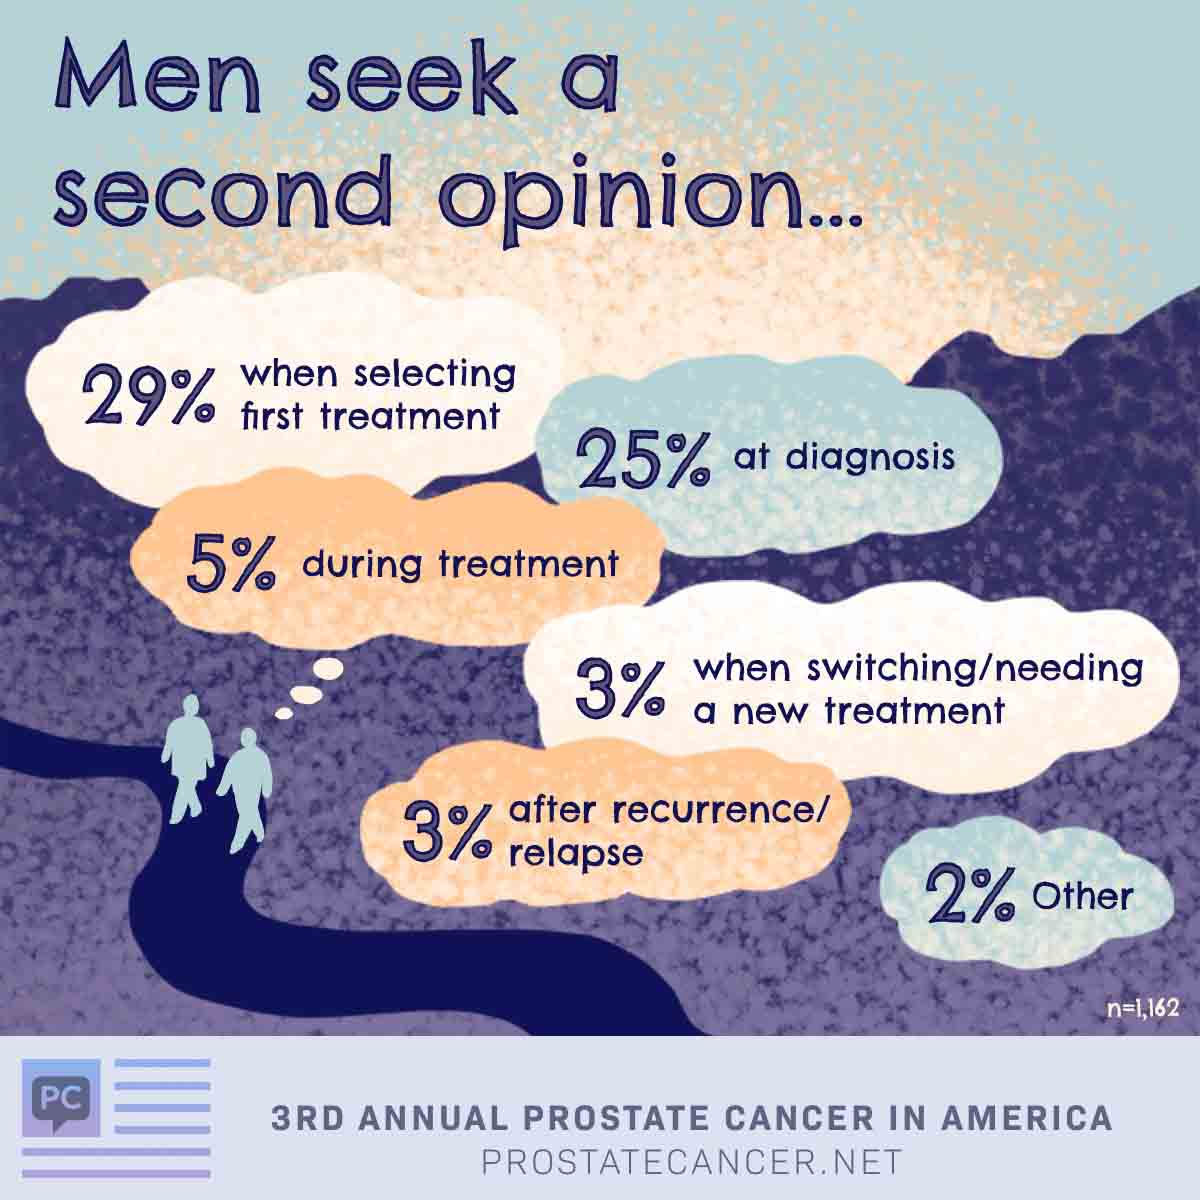 Men seek a second opinion when selecting first treatment 29%, at diagnosis 25%, during treatment 5%, when switching/needing a new treatment 3%, after recurrence/relapse 3%, other 2%.